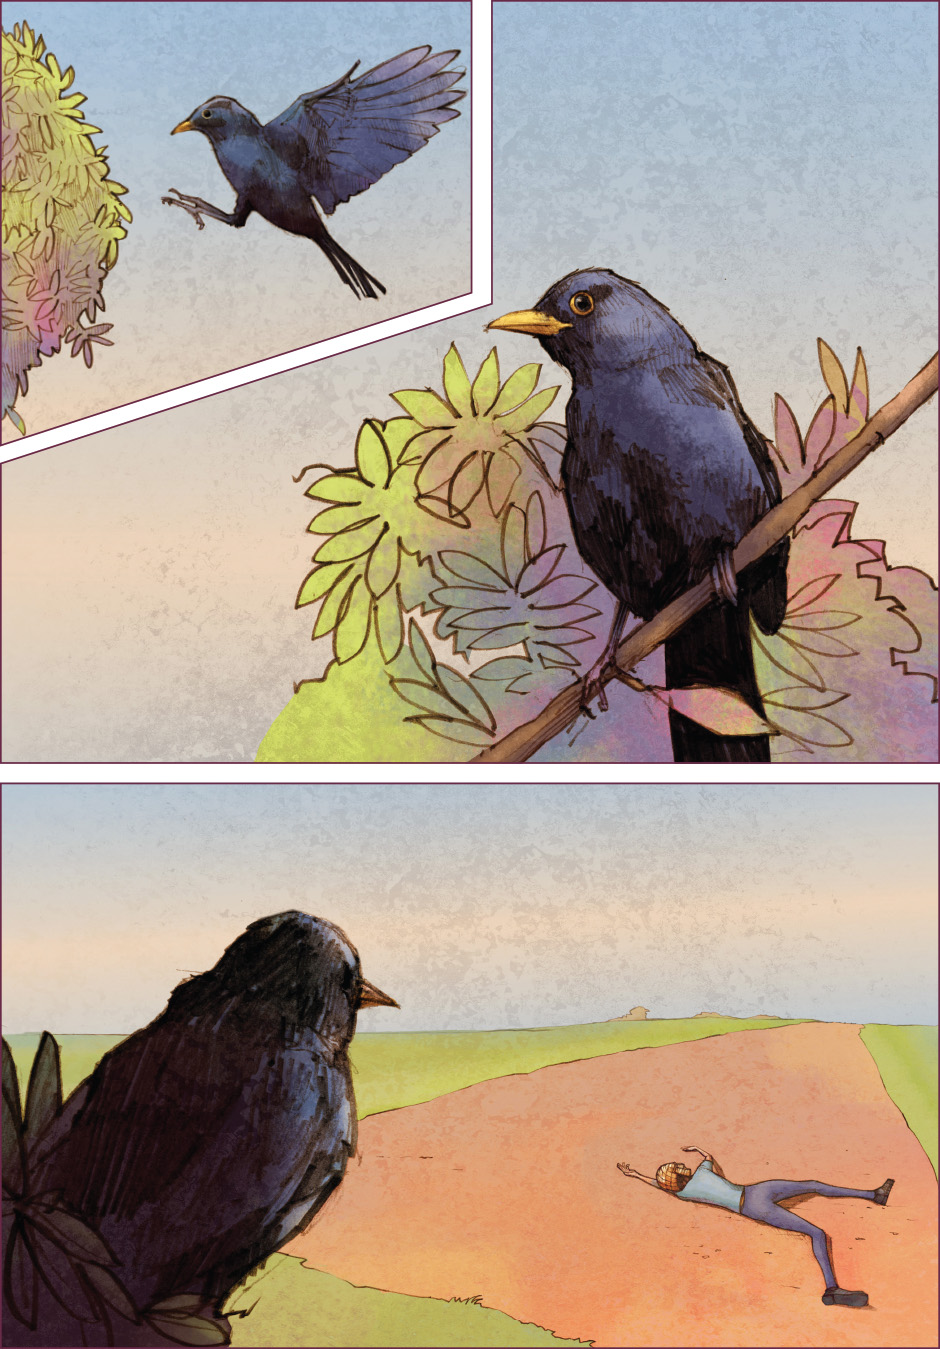 Lian Webcomic, The Tree of Life, chapter 2. Ousel the blackbird